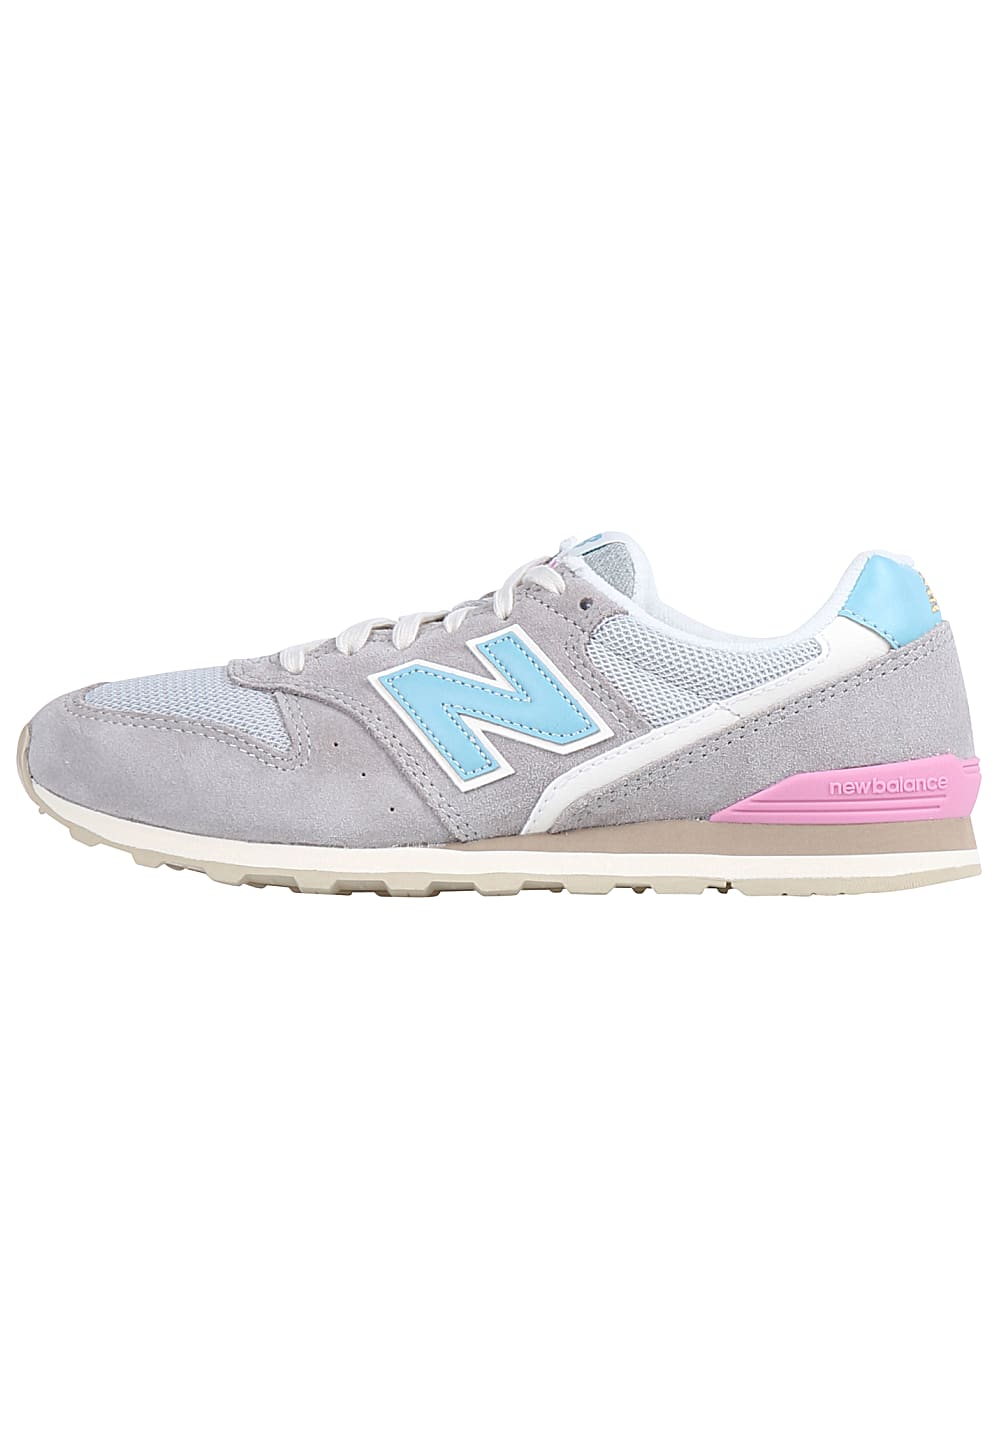 NEW BALANCE WL996 B - Sneaker für Damen - Grau - Planet Sports